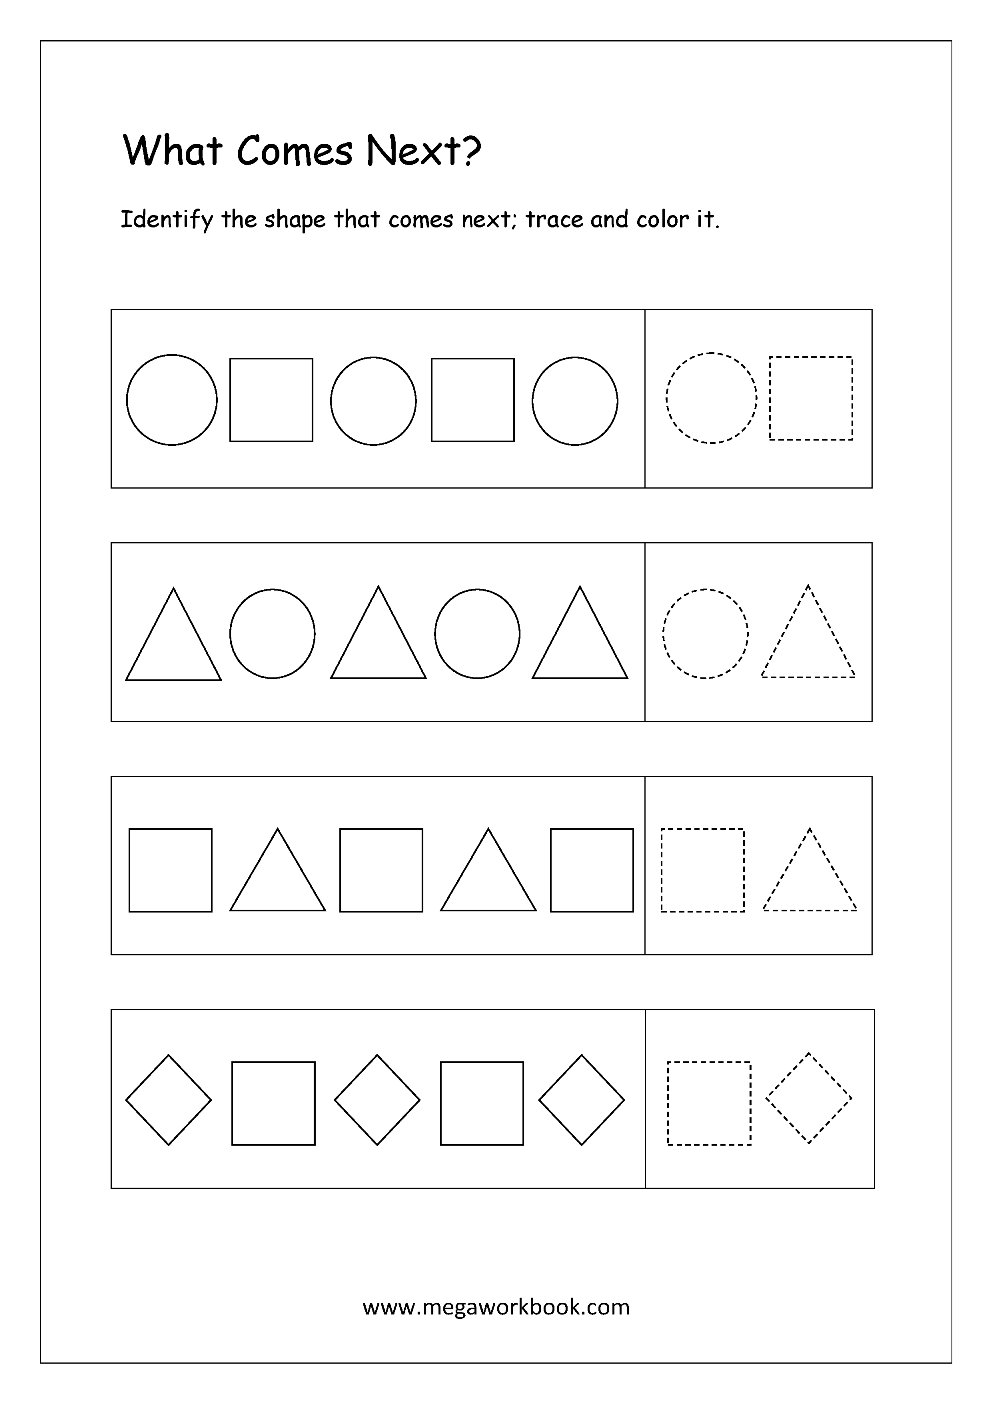 Free Printable Shapes and Pattern Worksheets for Preschool and ...